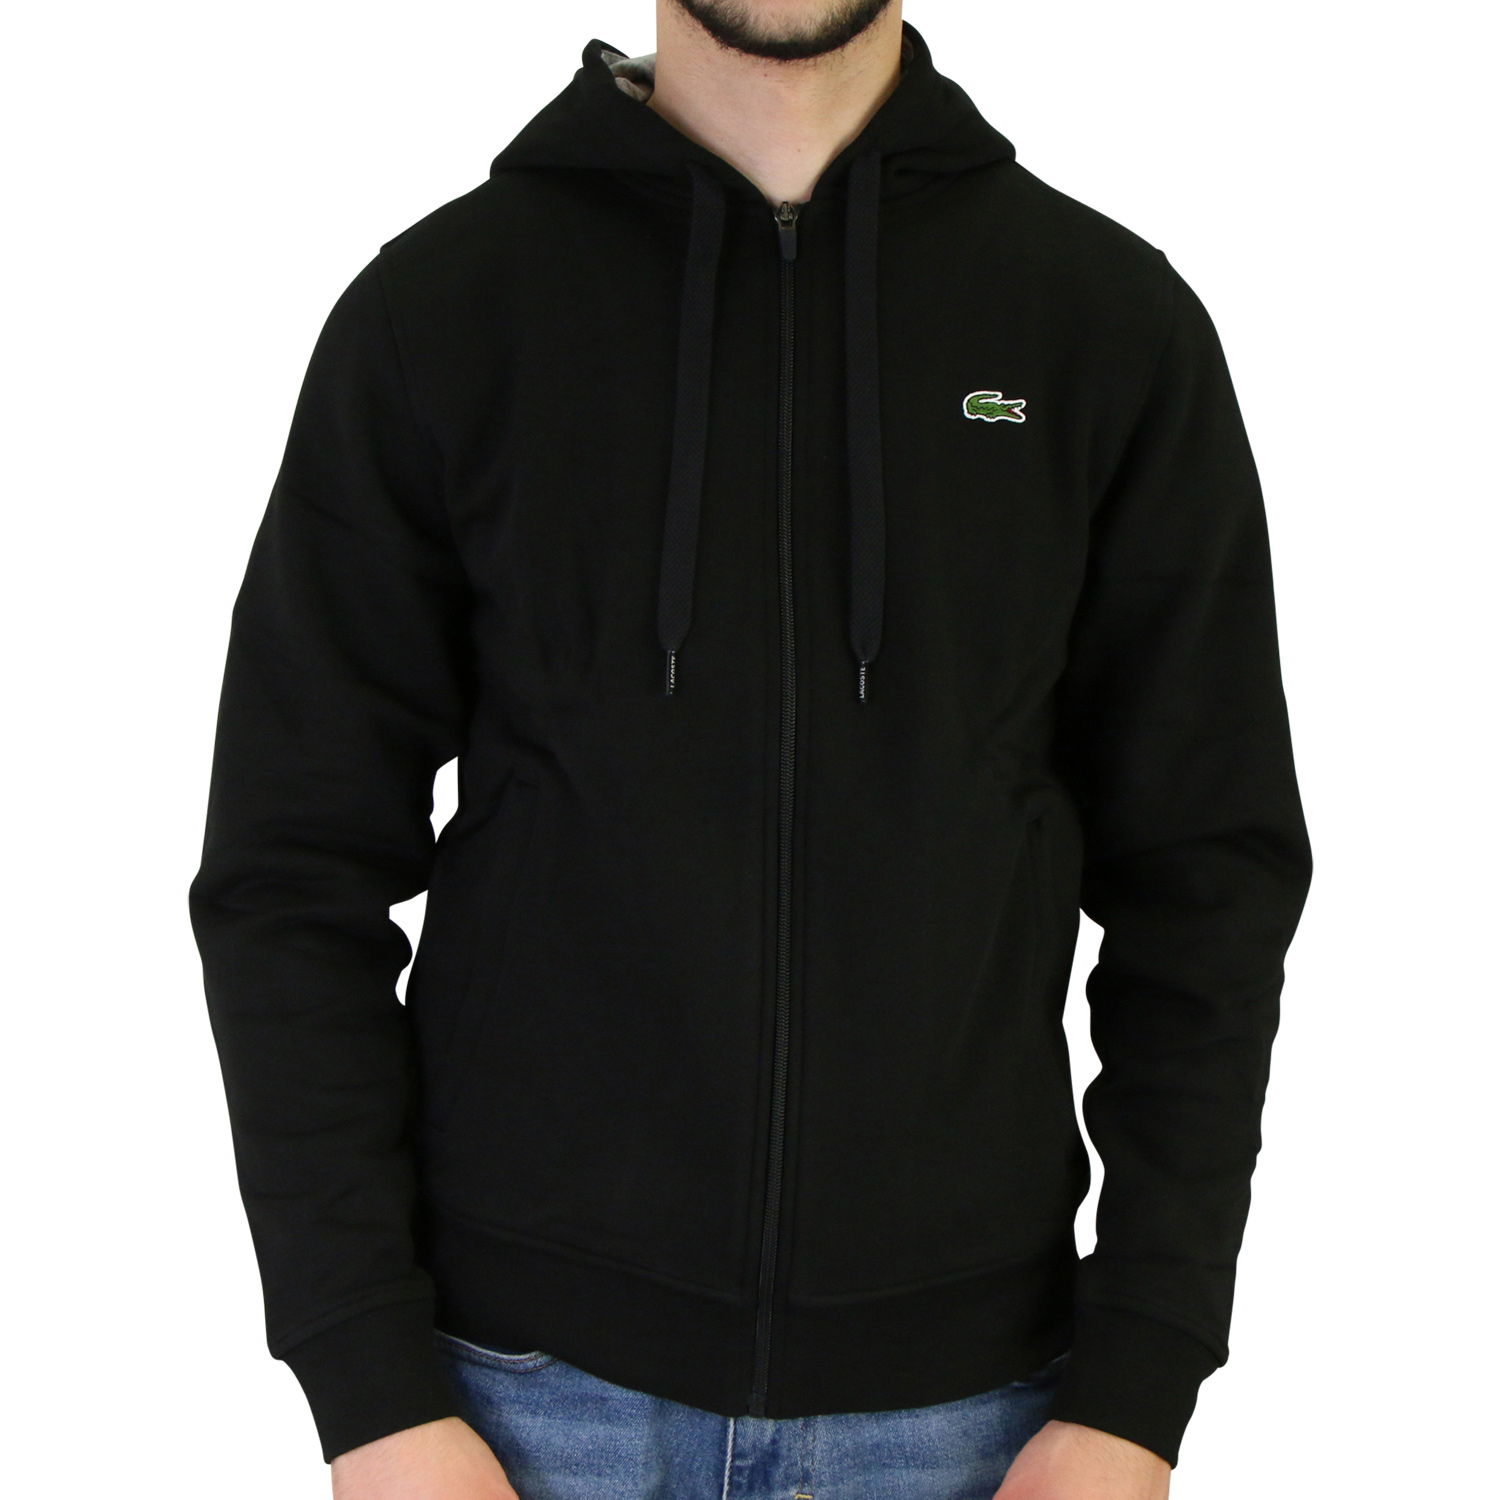 lacoste kapuzen sweatshirt jacke kapuzenjacke hoodie. Black Bedroom Furniture Sets. Home Design Ideas